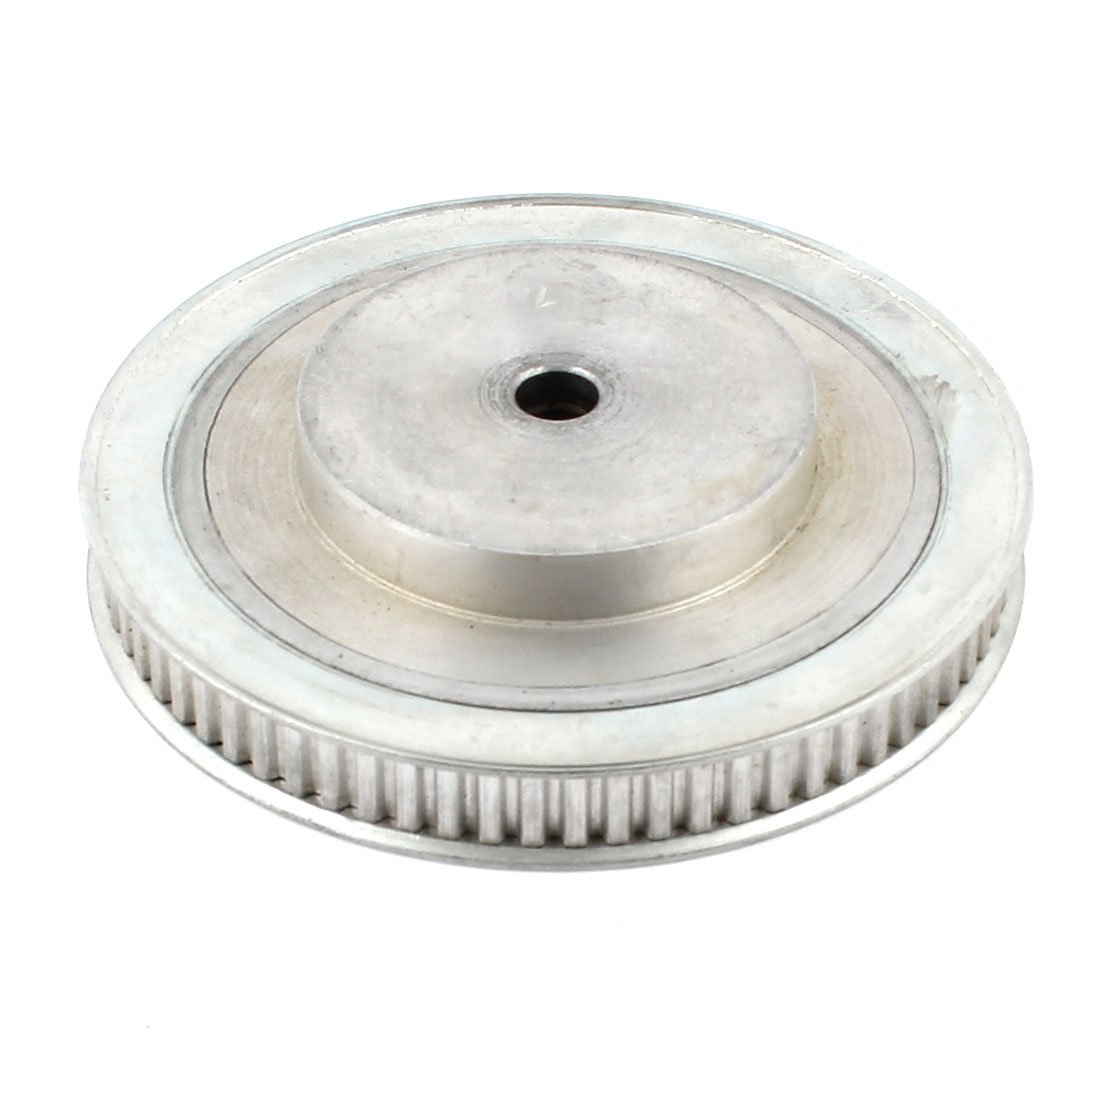 Aluminum Alloy 72T 10mm Bore Dia Double Flanged Timing Pulley